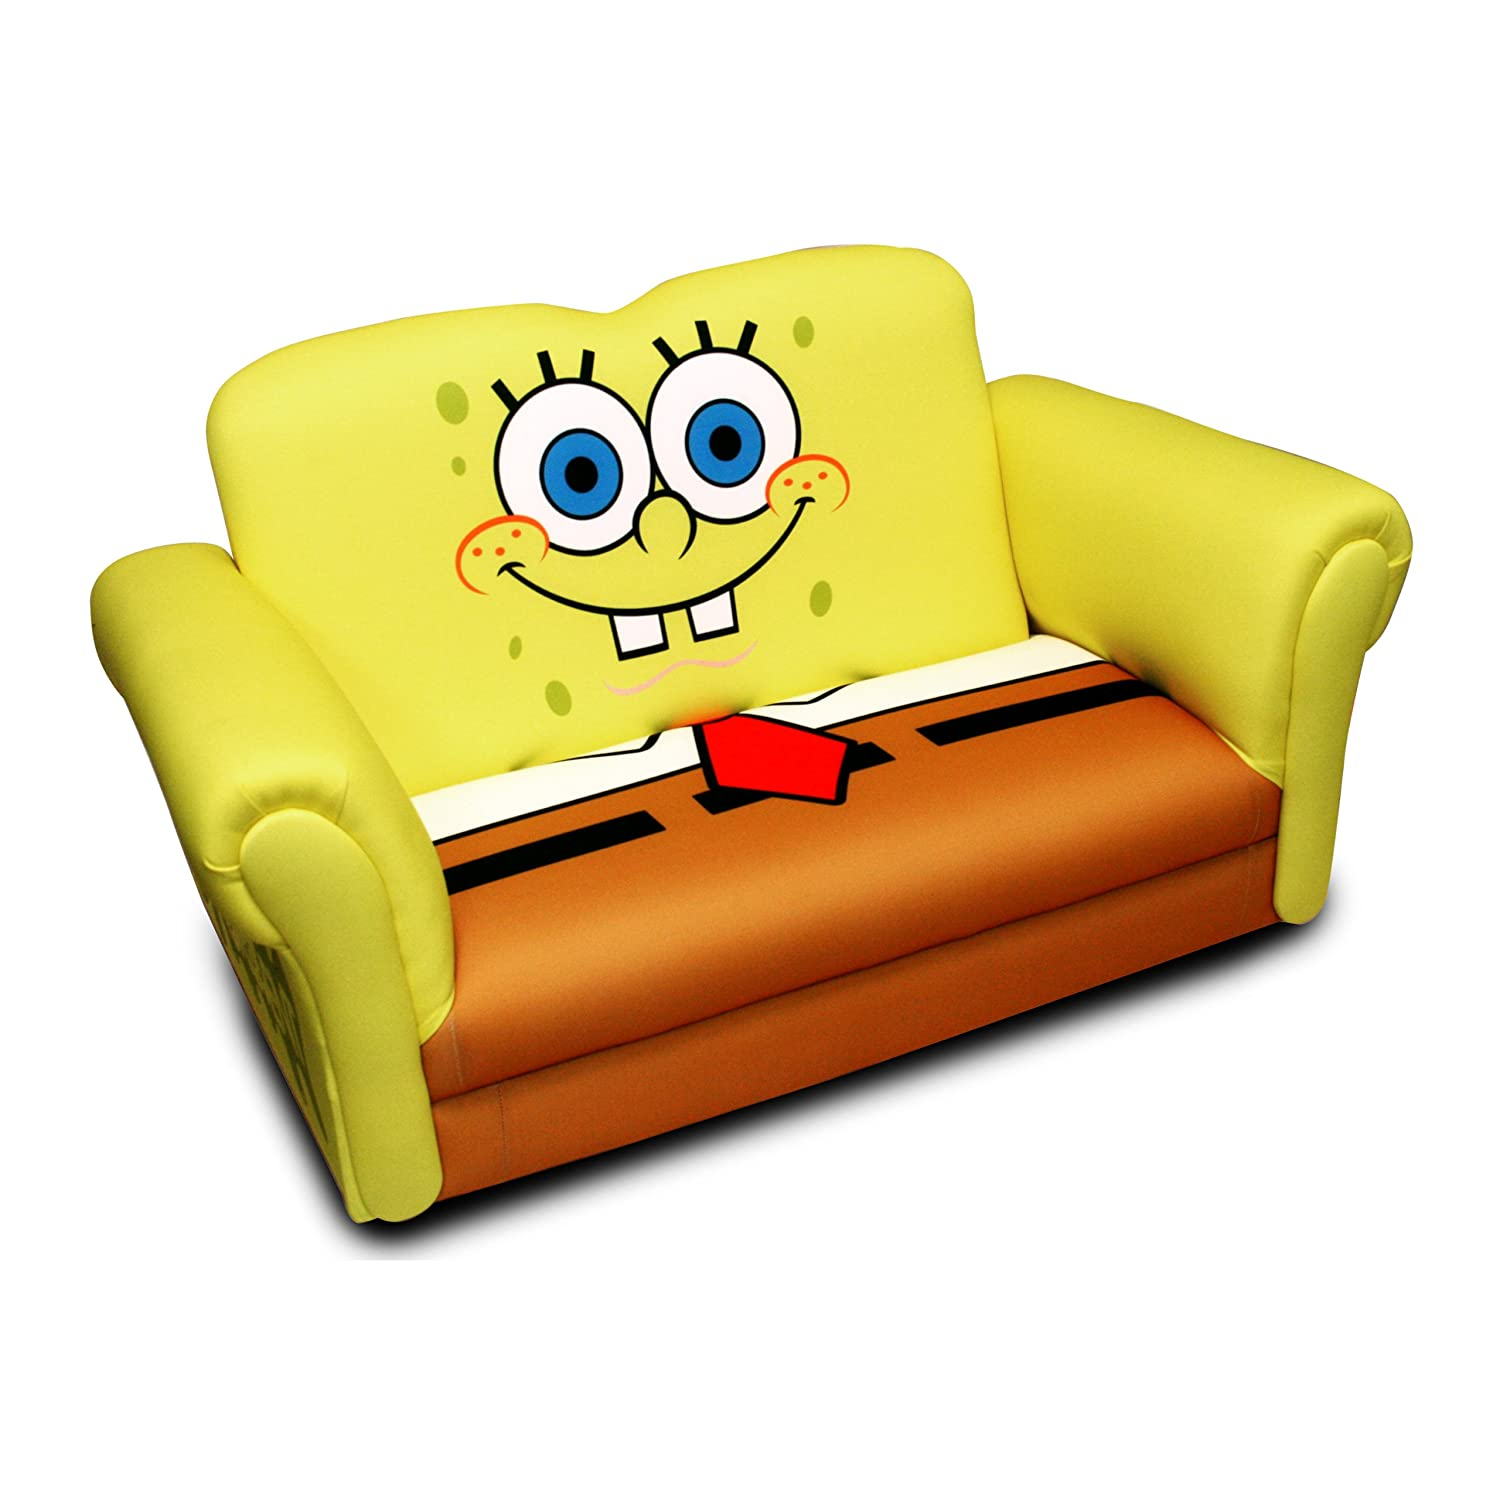 Amazon.com: Nickelodeon Deluxe Rocking sofa, Bob Esponja ...